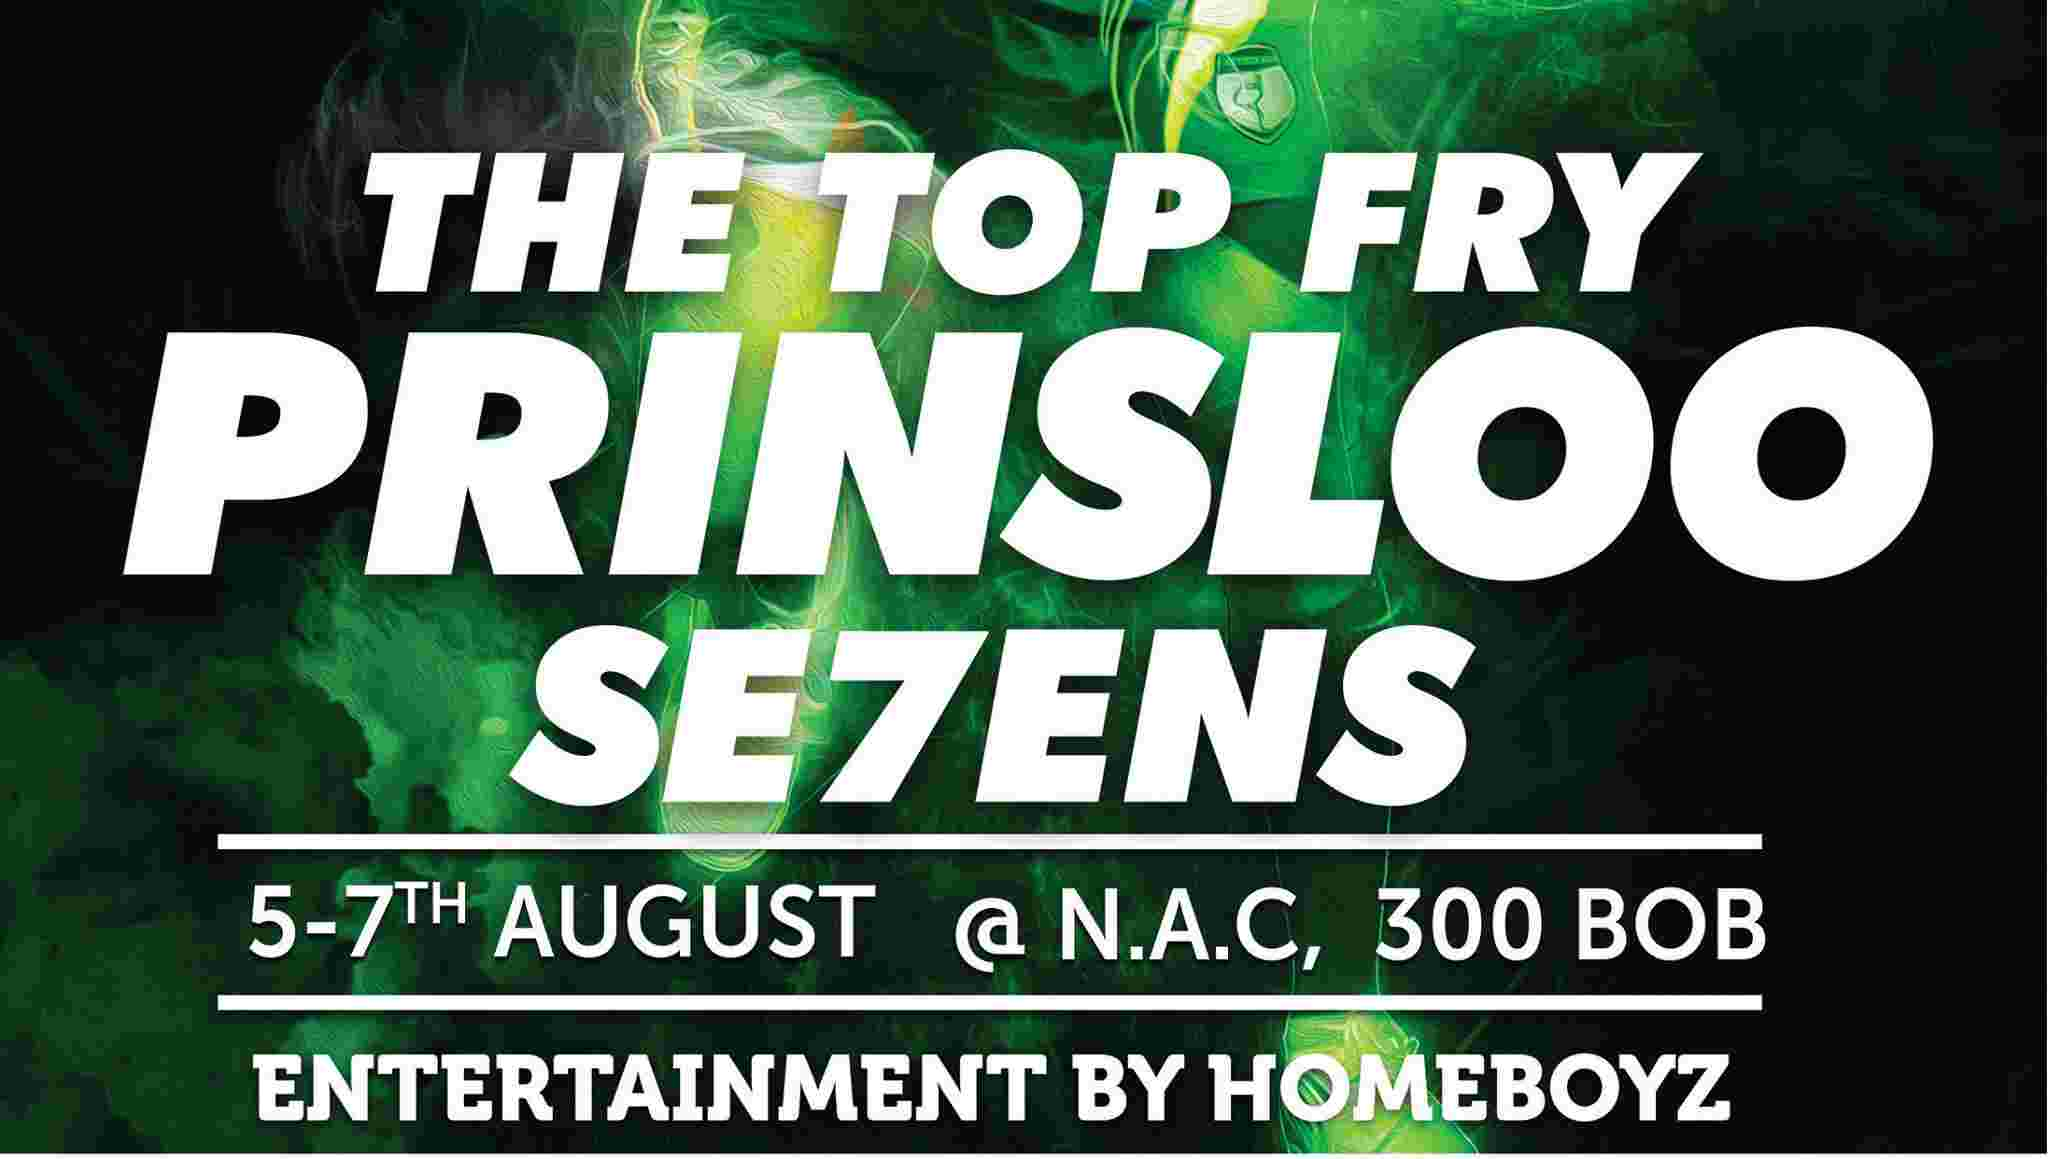 All set for Top fry Prinsloo sevens